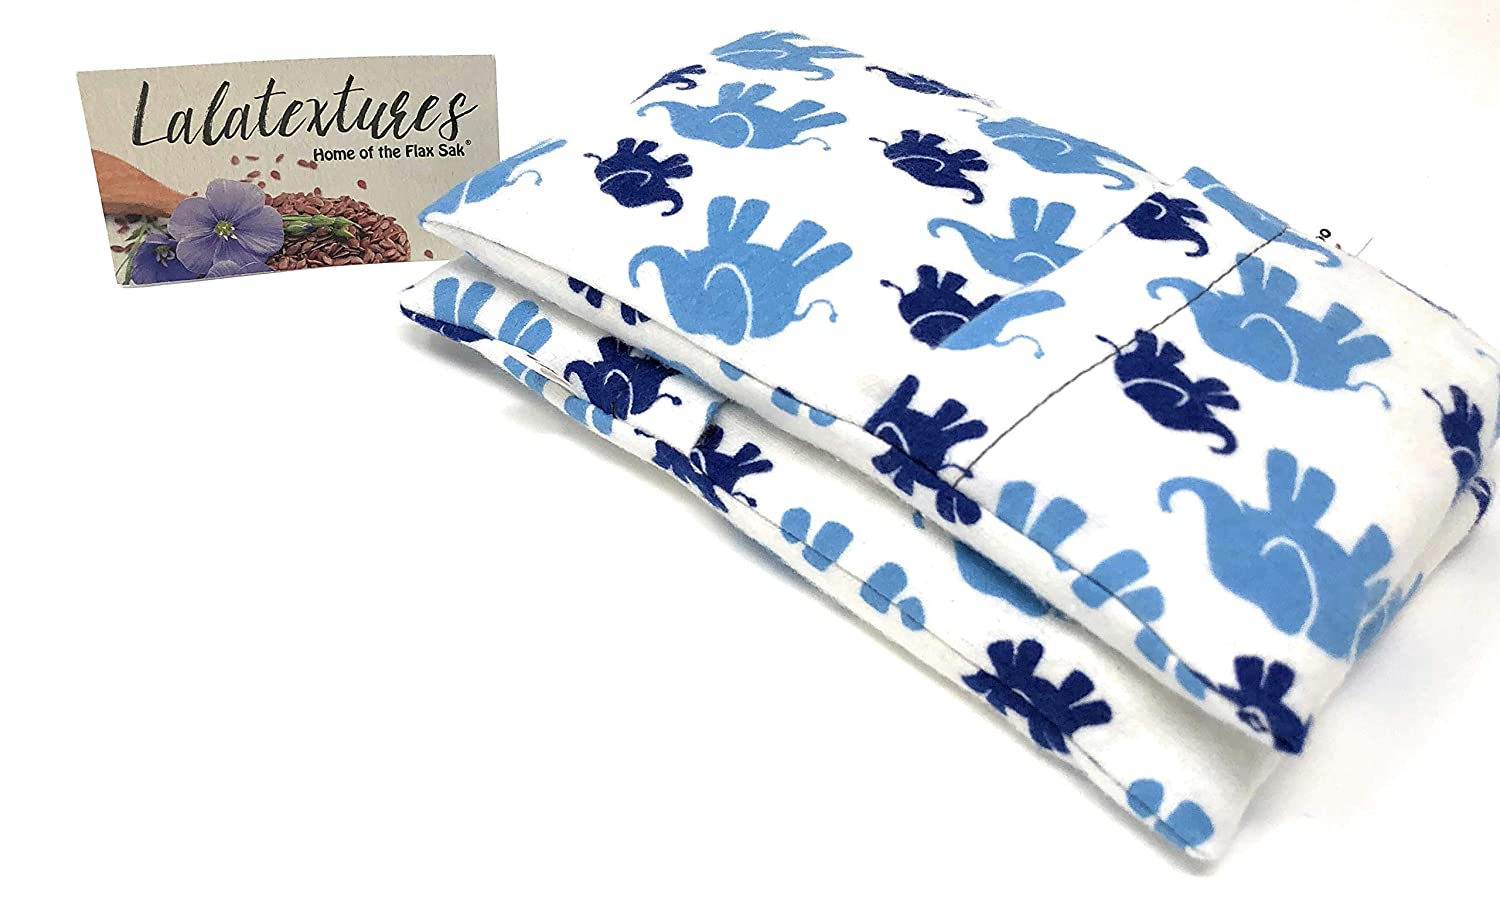 Two Unscented BooBoo Flax Saks, Microwaveable Heating Pads for Children. Keep them in the freezer to soothe their bumps and bruises! White with Elephant.